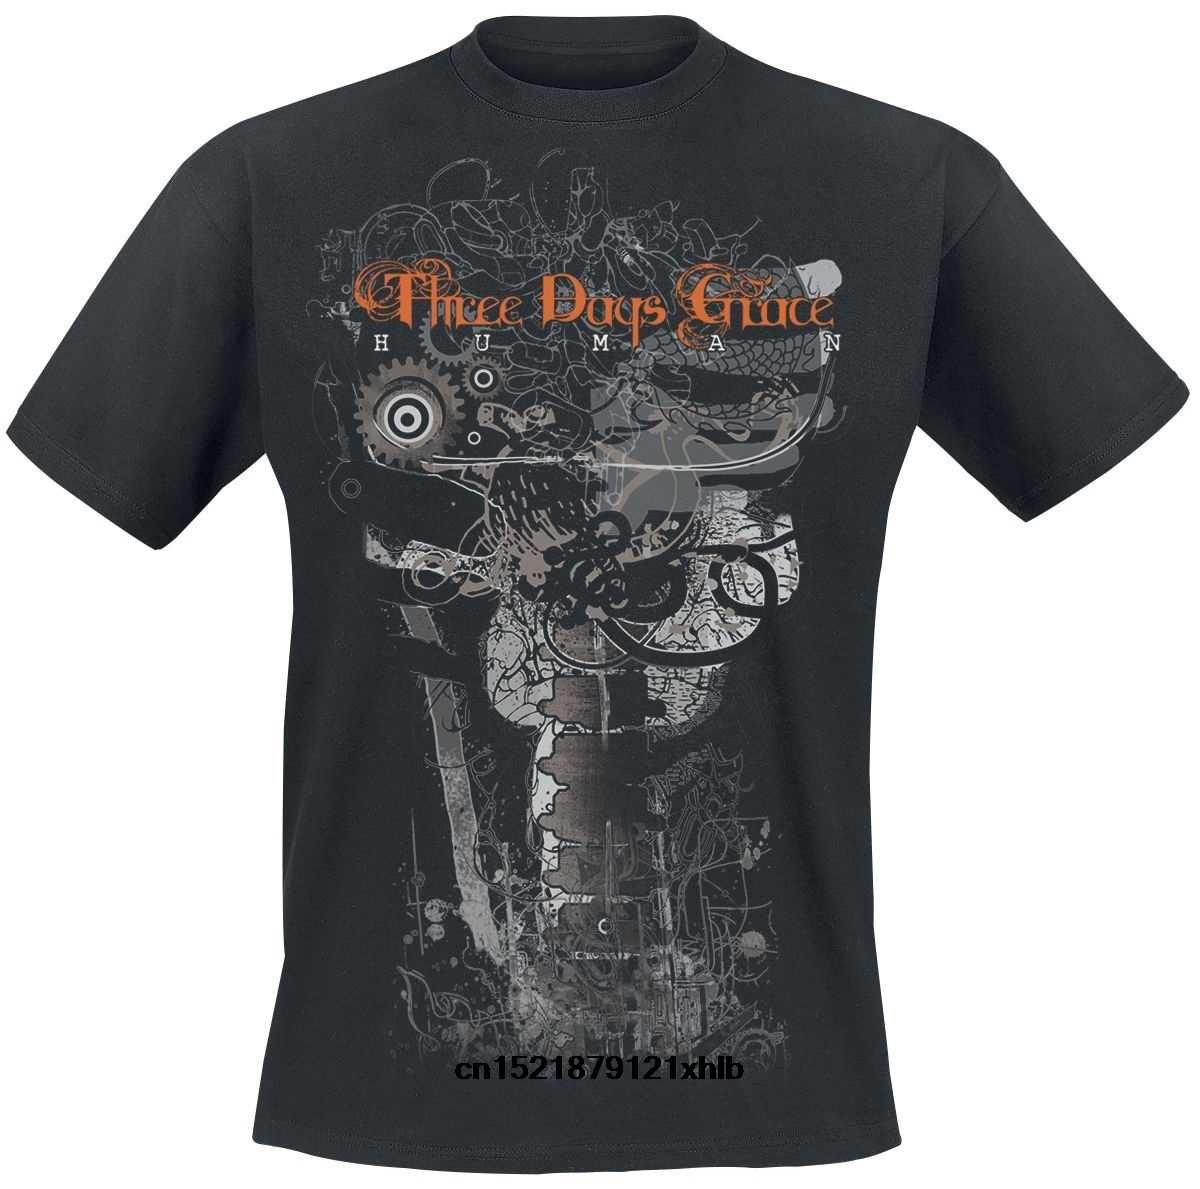 Men T shirt Human - Another Gear Three Days Grace funny t-shirt novelty tshirt women